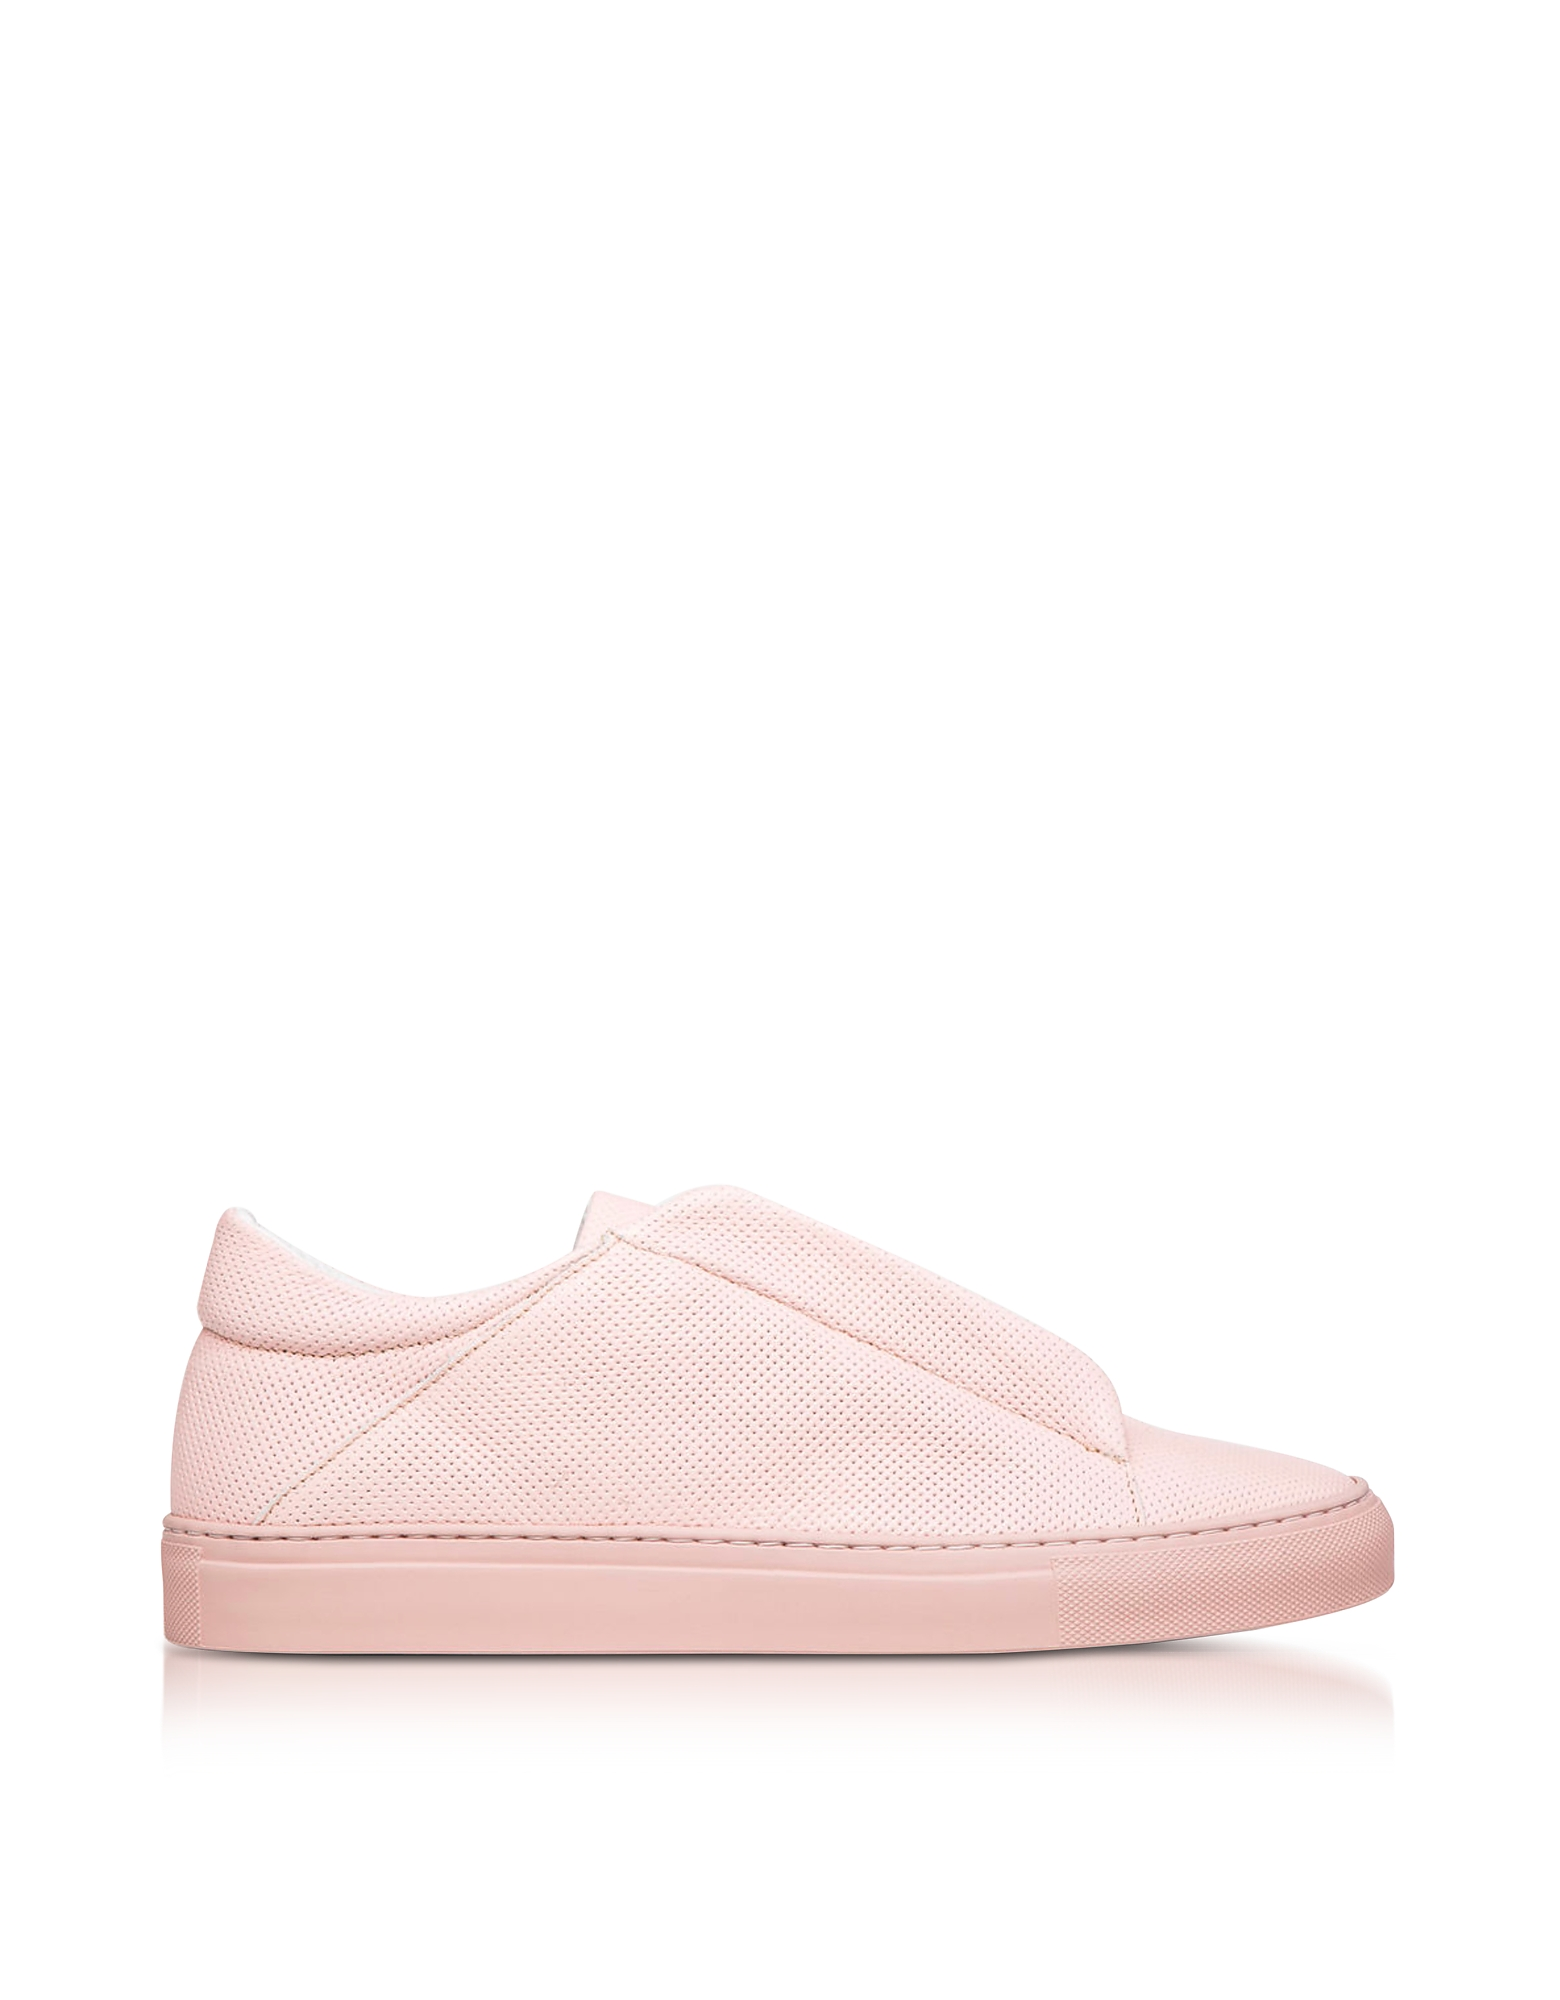 Ylati Nerone Pink Perforated Leather Low Top Men's Sneakers